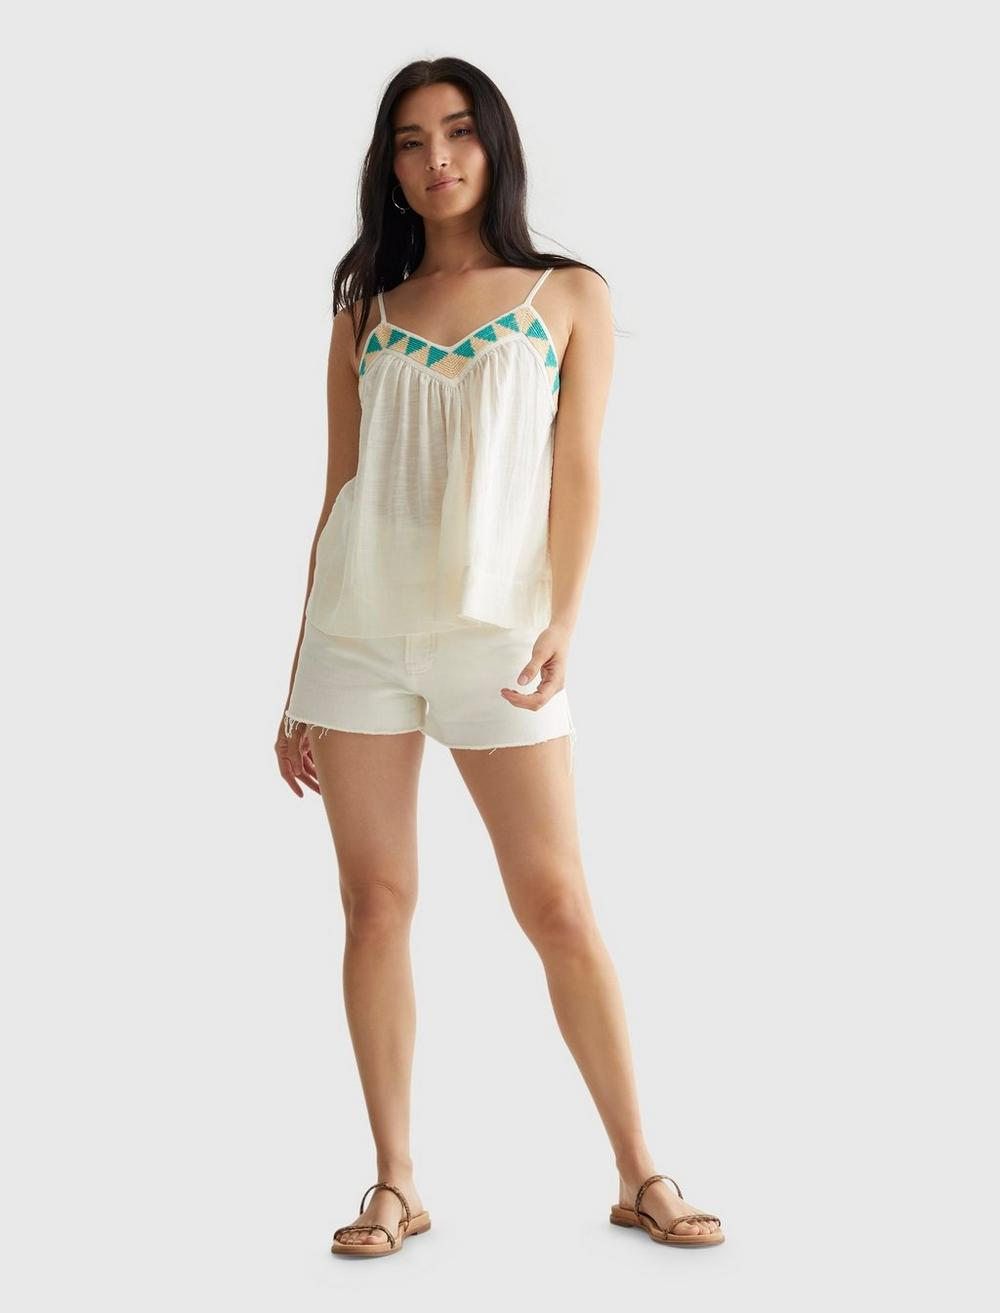 LIMITED EDITION BEADED FLOWY CAMI, image 2